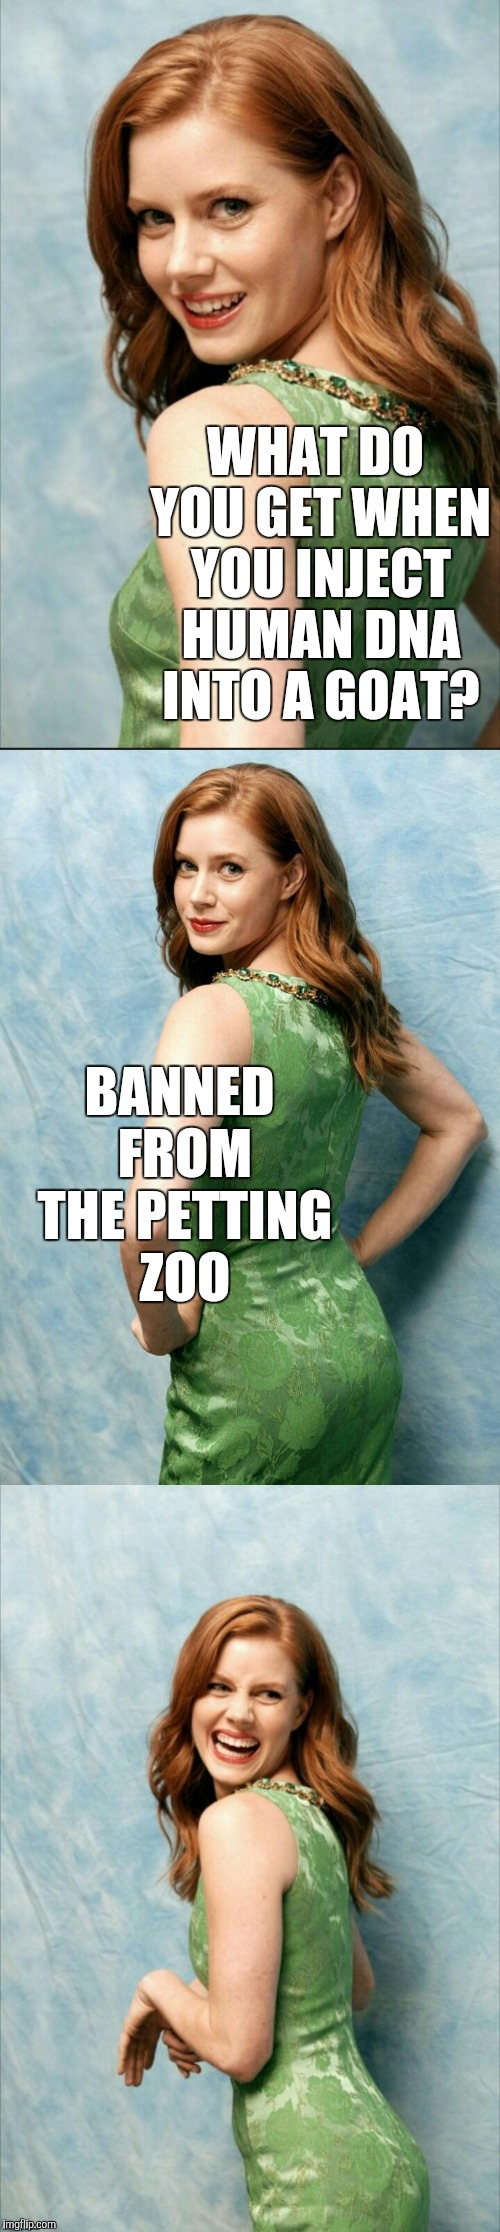 Introducing my new Amy Adams joke template! Template link is in the comments   | WHAT DO YOU GET WHEN YOU INJECT HUMAN DNA INTO A GOAT? BANNED FROM THE PETTING ZOO | image tagged in amy adams joke template,amy adams,jbmemegeek,bad puns | made w/ Imgflip meme maker